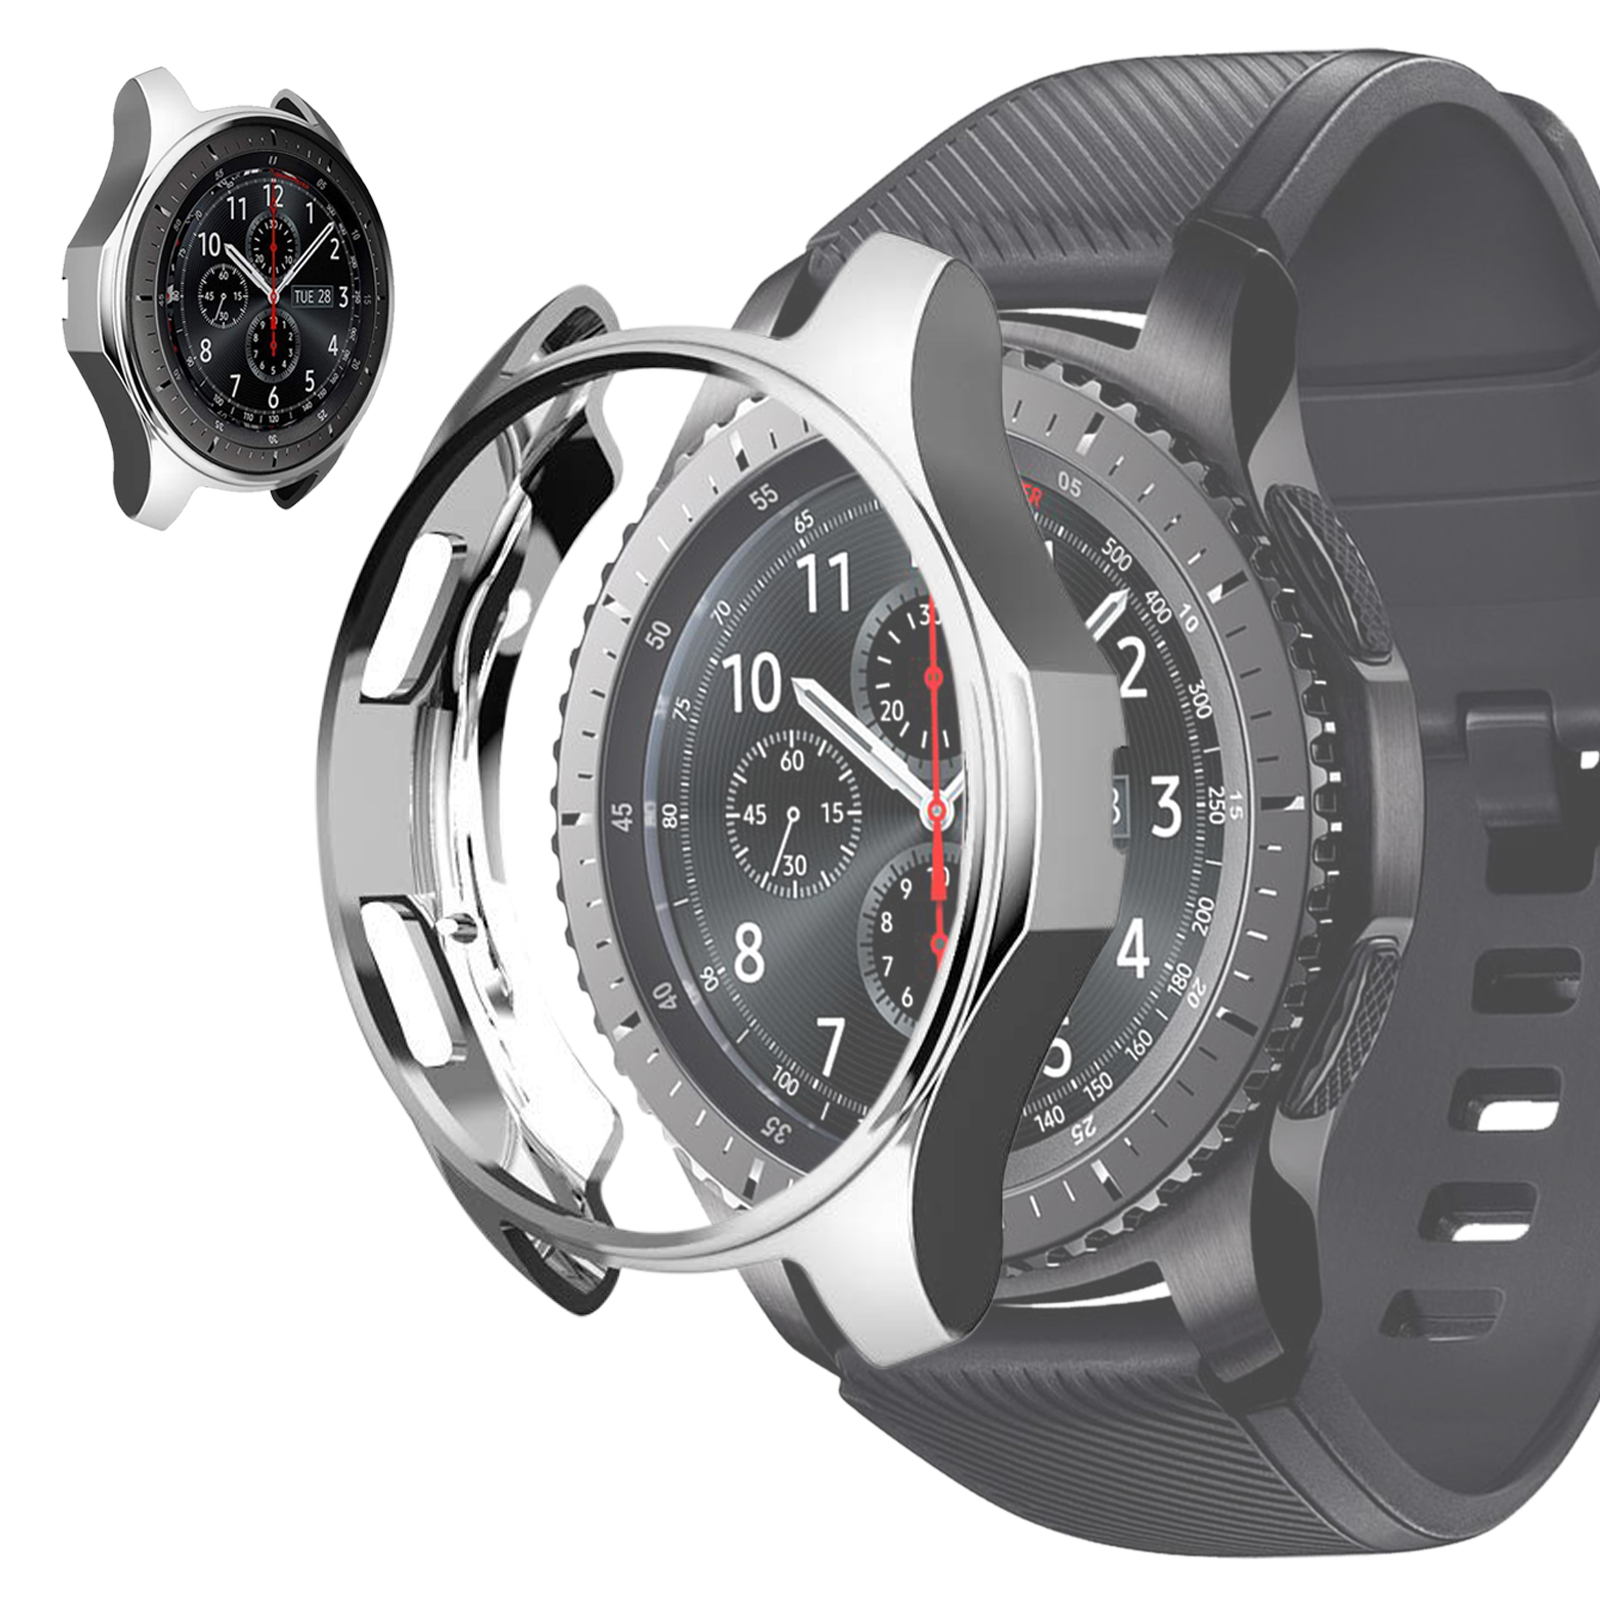 Soft-TPU-Slim-Smart-Watch-Case-Cover-For-Samsung-Gear-S3-Frontier-Galaxy-46mm thumbnail 13